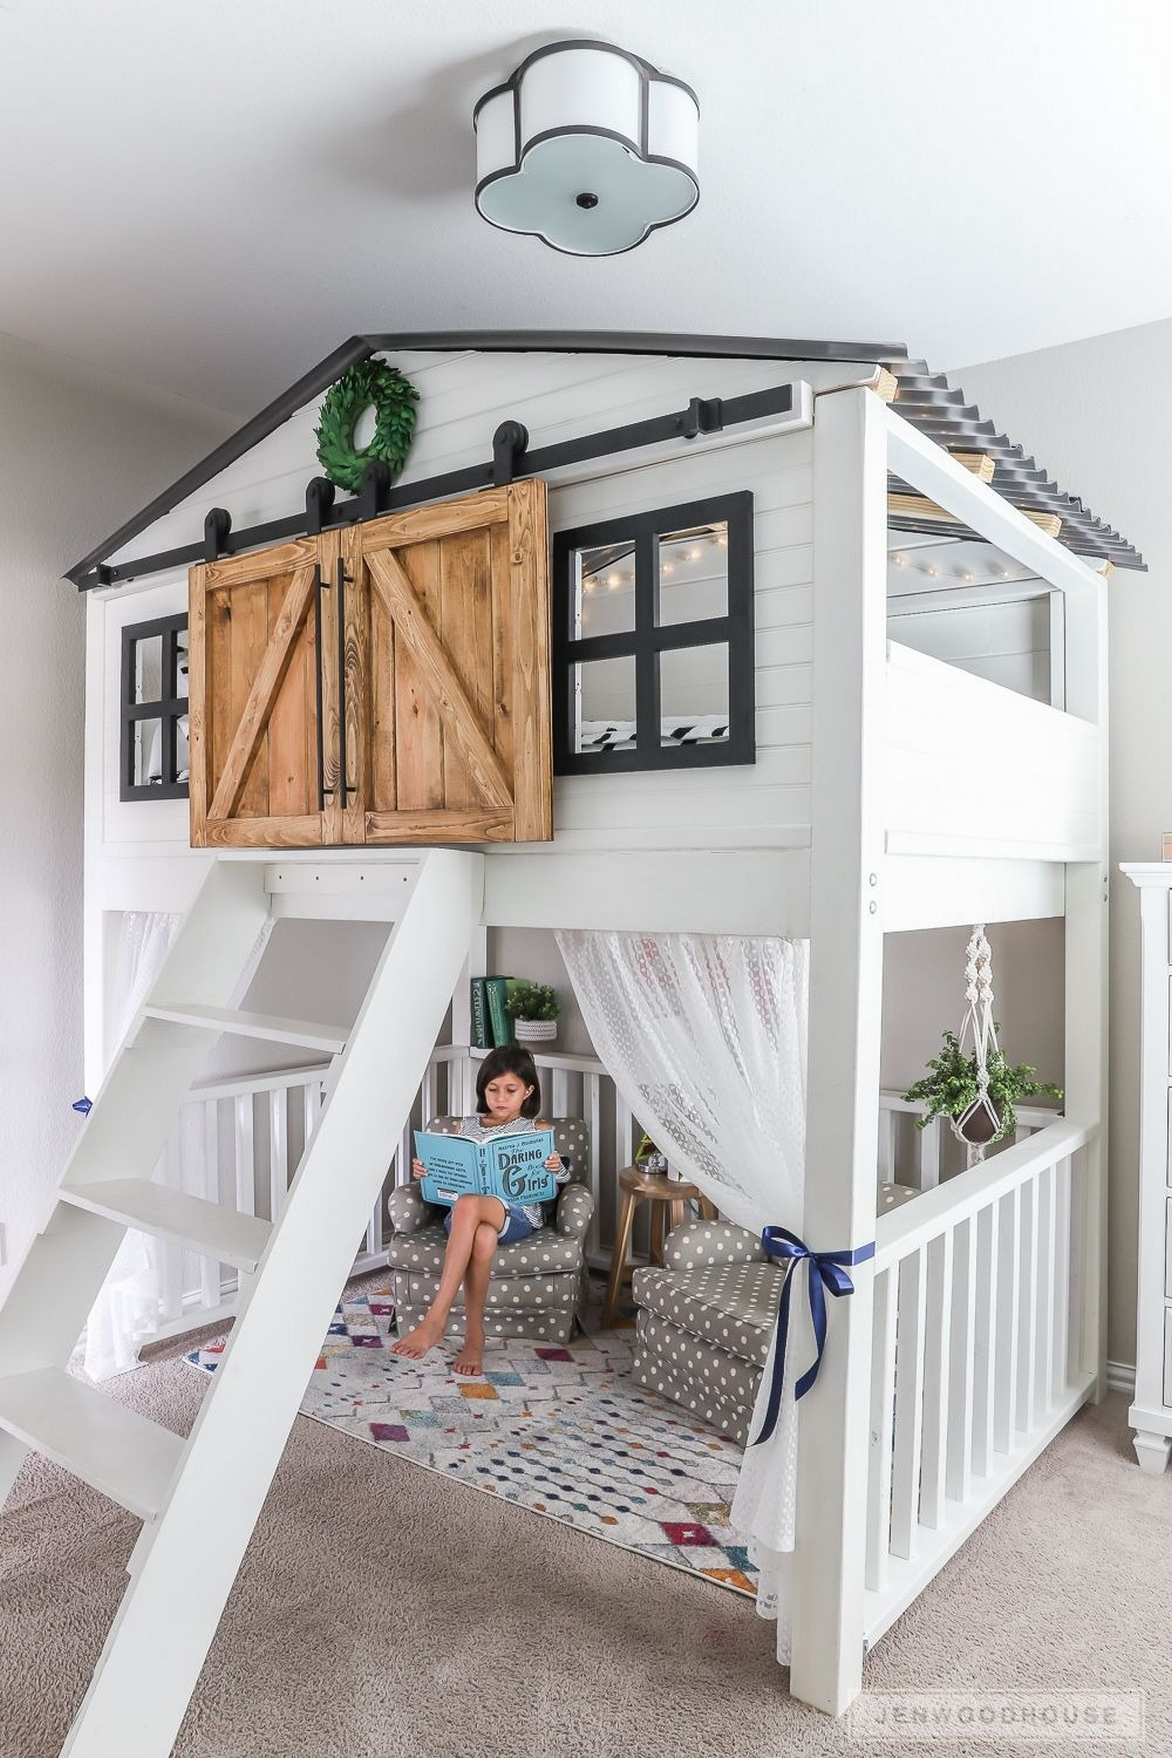 31 Most Popular Kids Bunk Beds Design Ideas Make Sleeping Fun For Your Kids 4